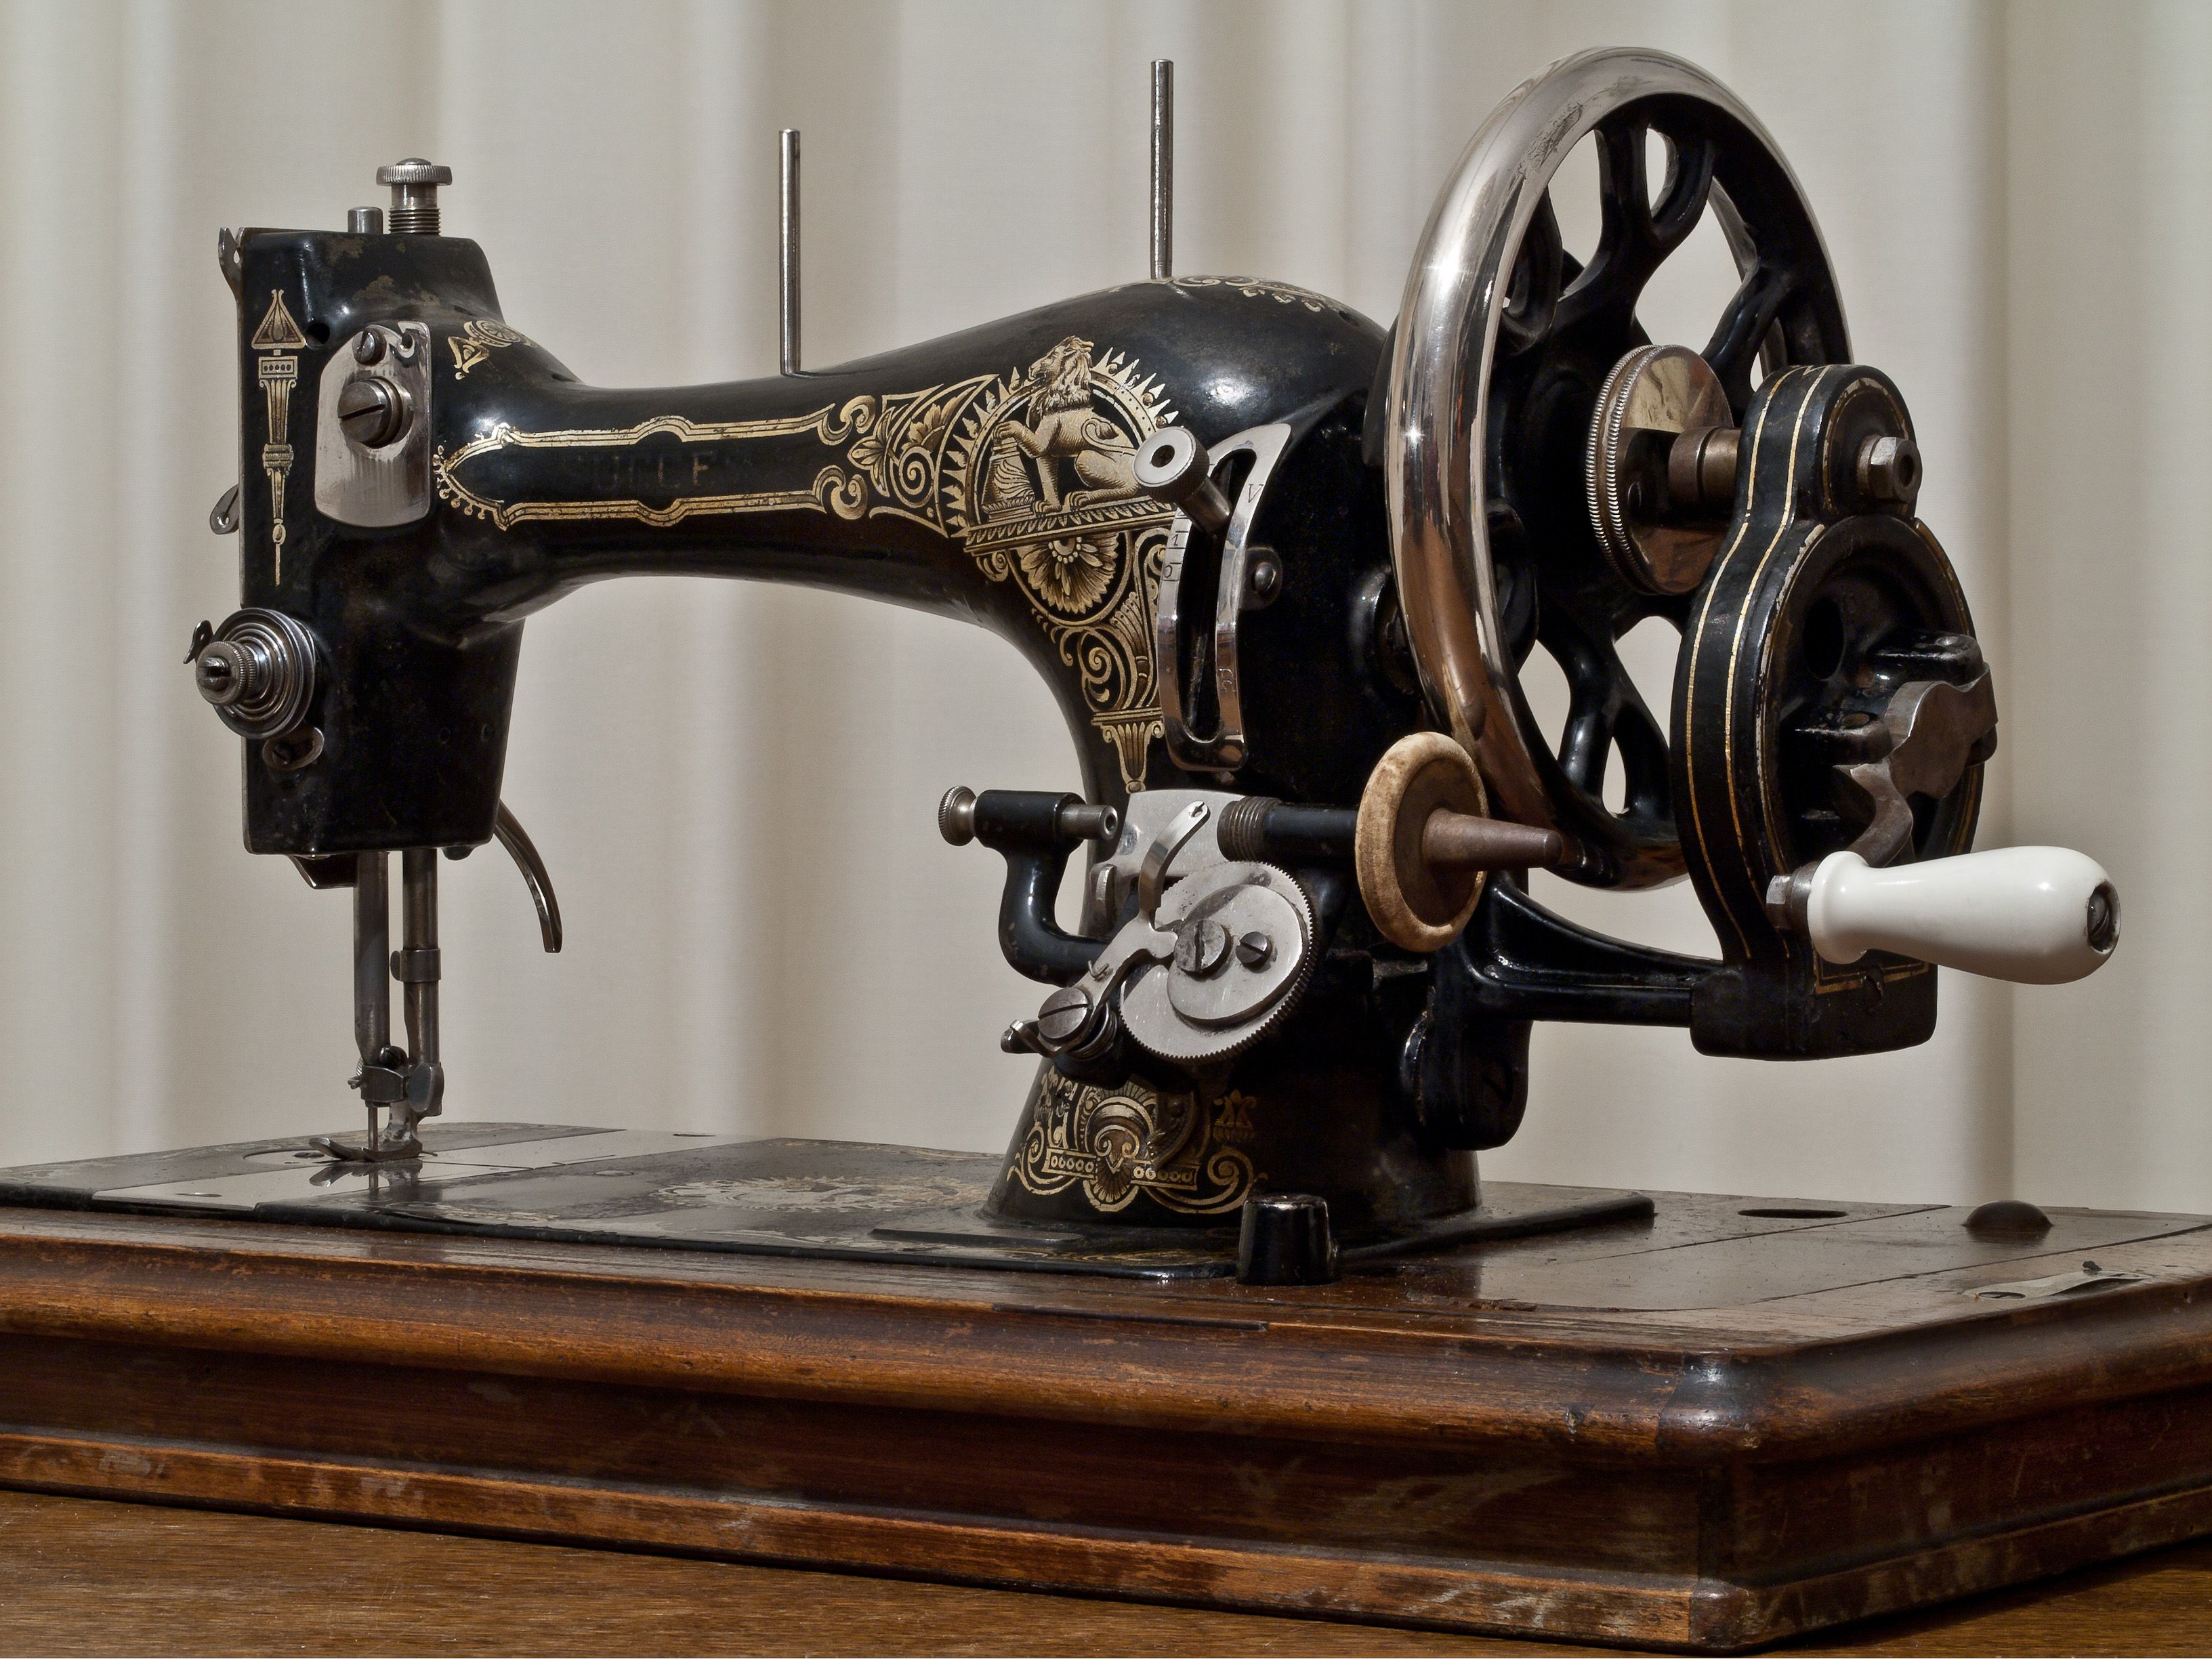 File Succes Vintage Sewing Machine Jpg Wikimedia Commons